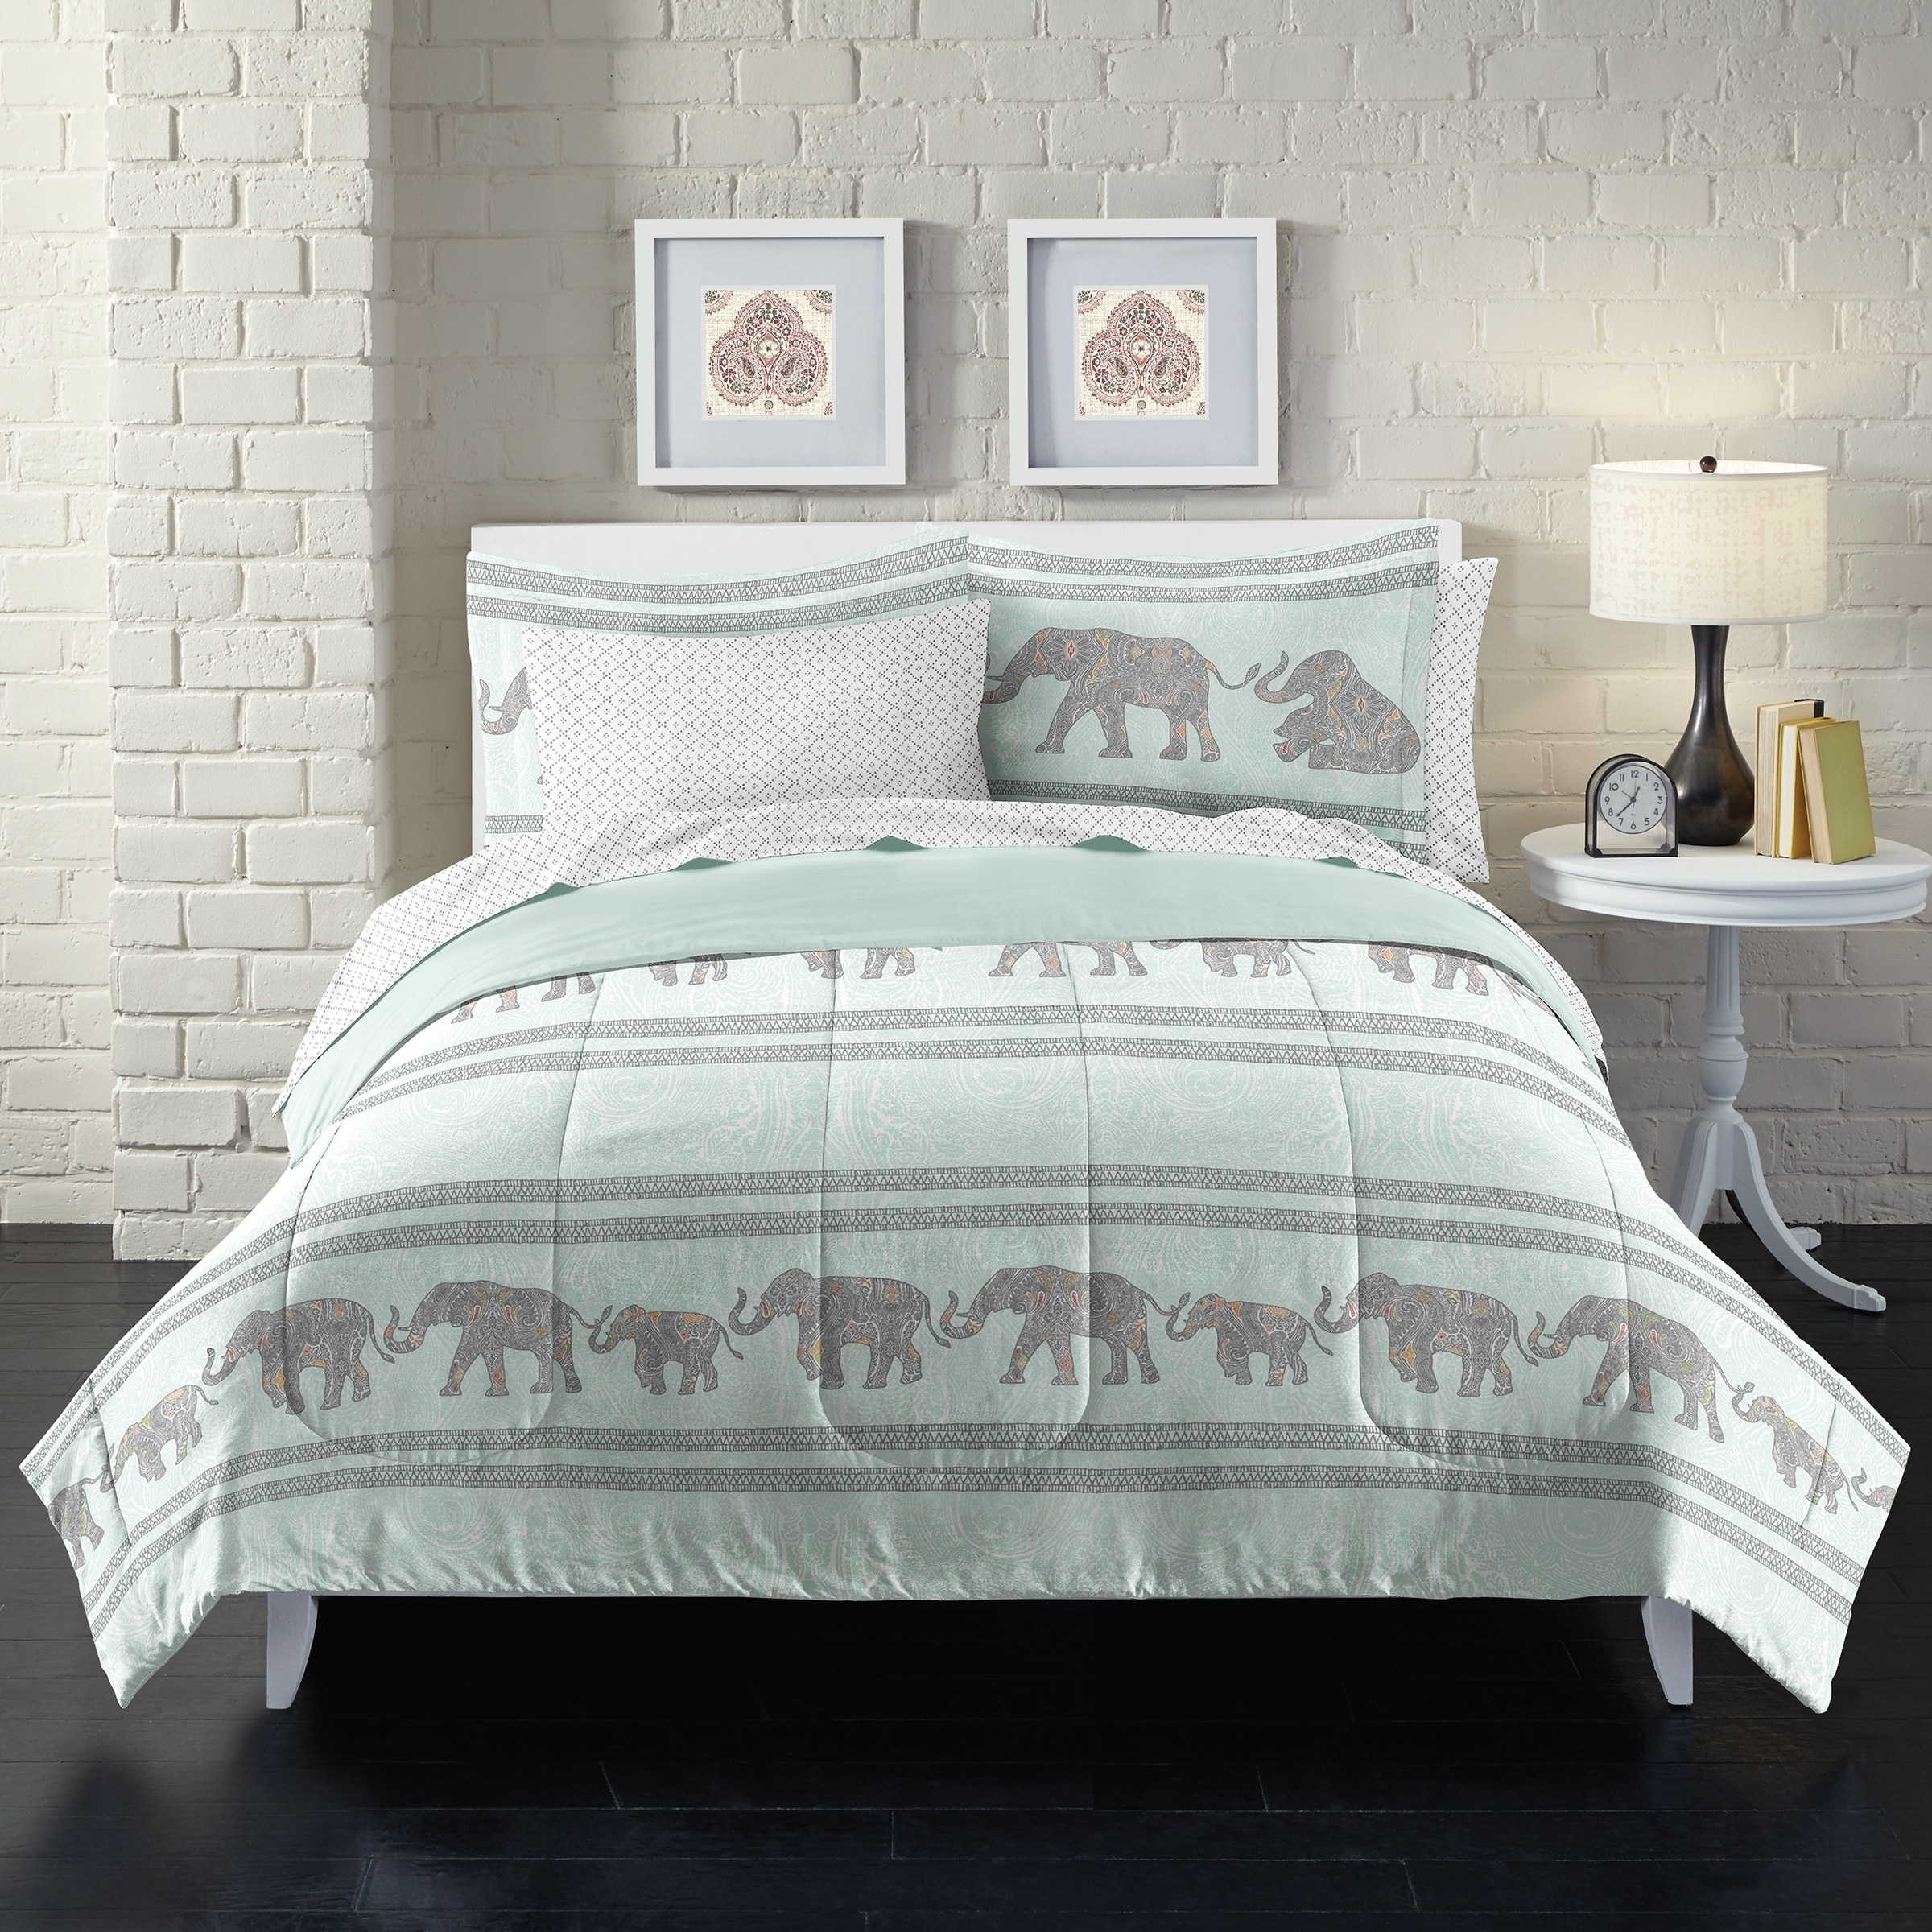 Boho Elephant 7 Piece Bed In A Bag With Sheet Set Overstock 27066660